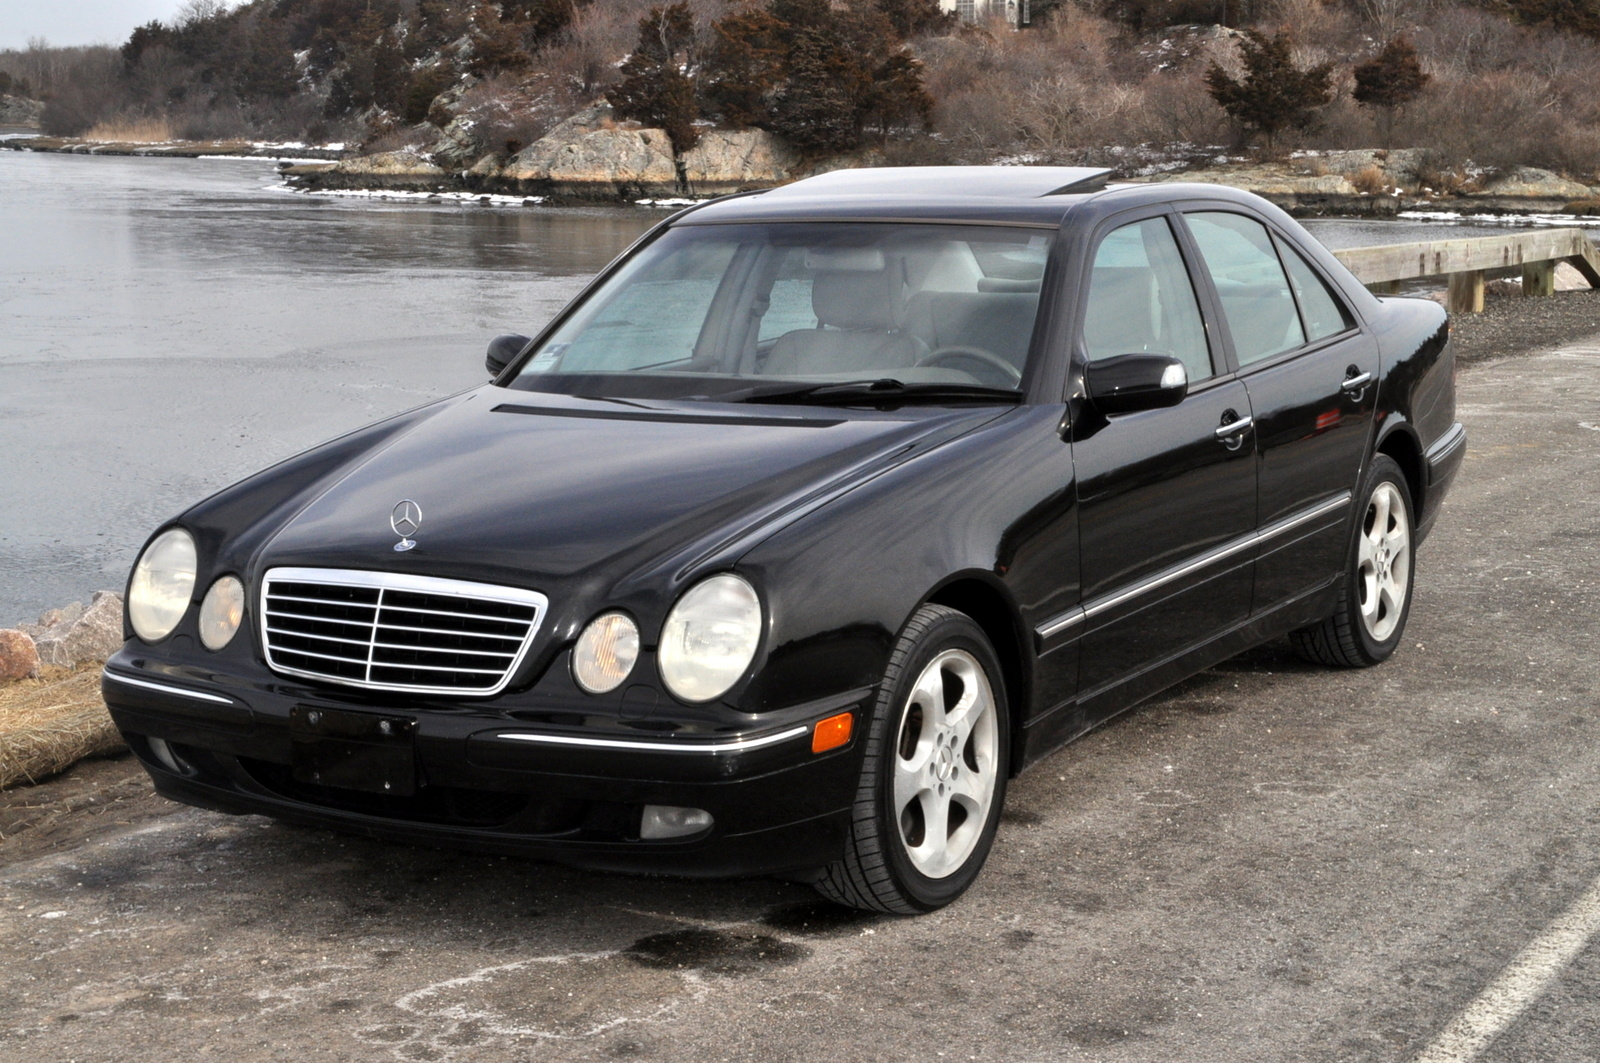 2002 mercedes benz e class pictures cargurus for 2004 mercedes benz e320 review